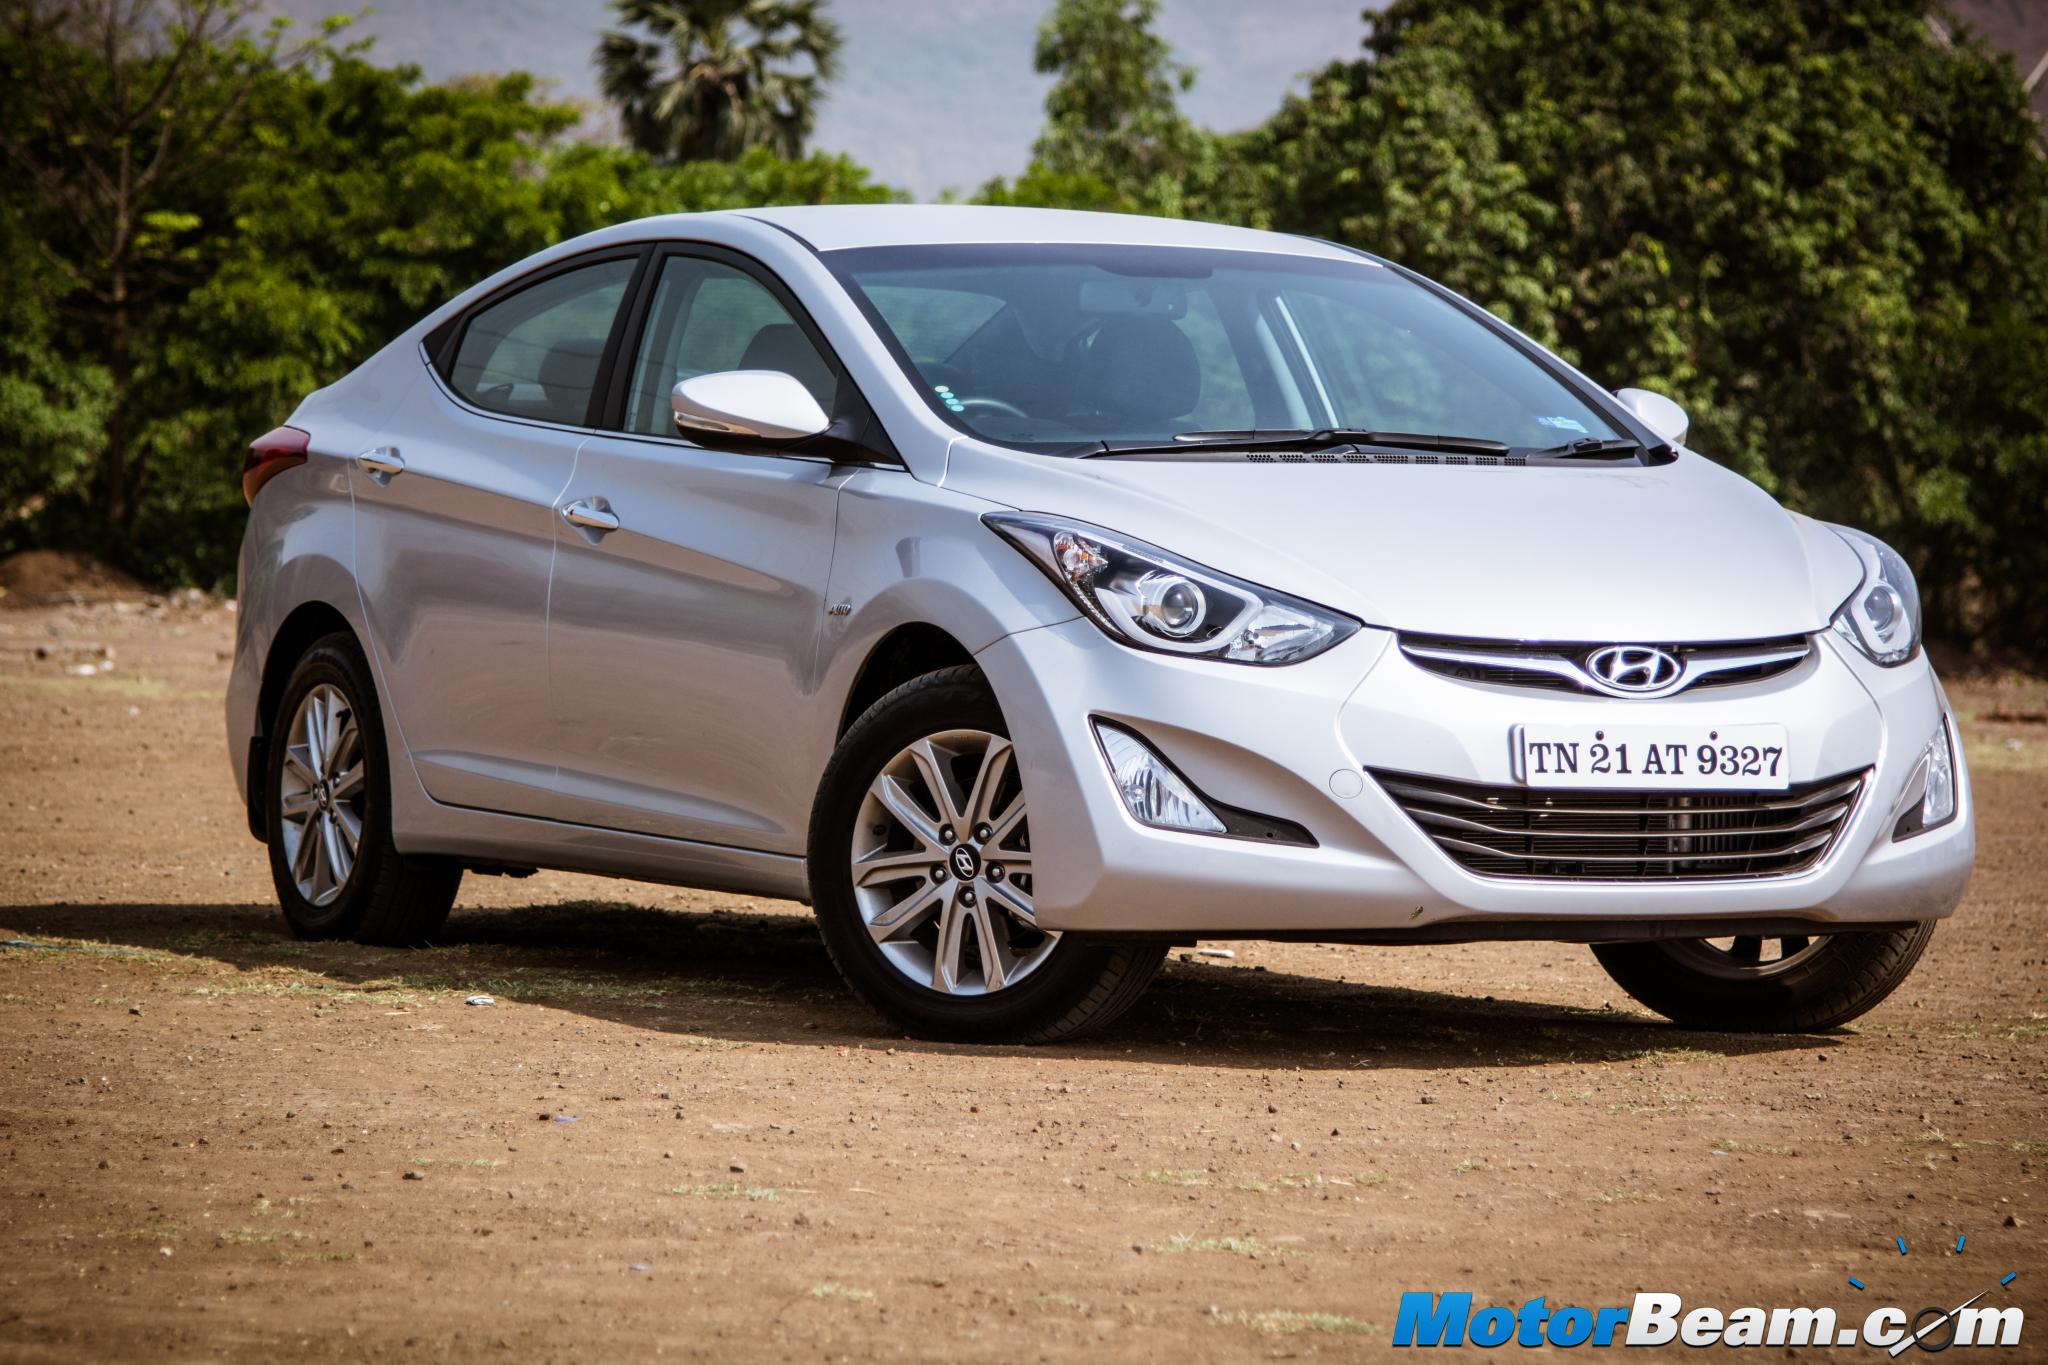 2015 Hyundai Elantra Facelift Test Drive Review